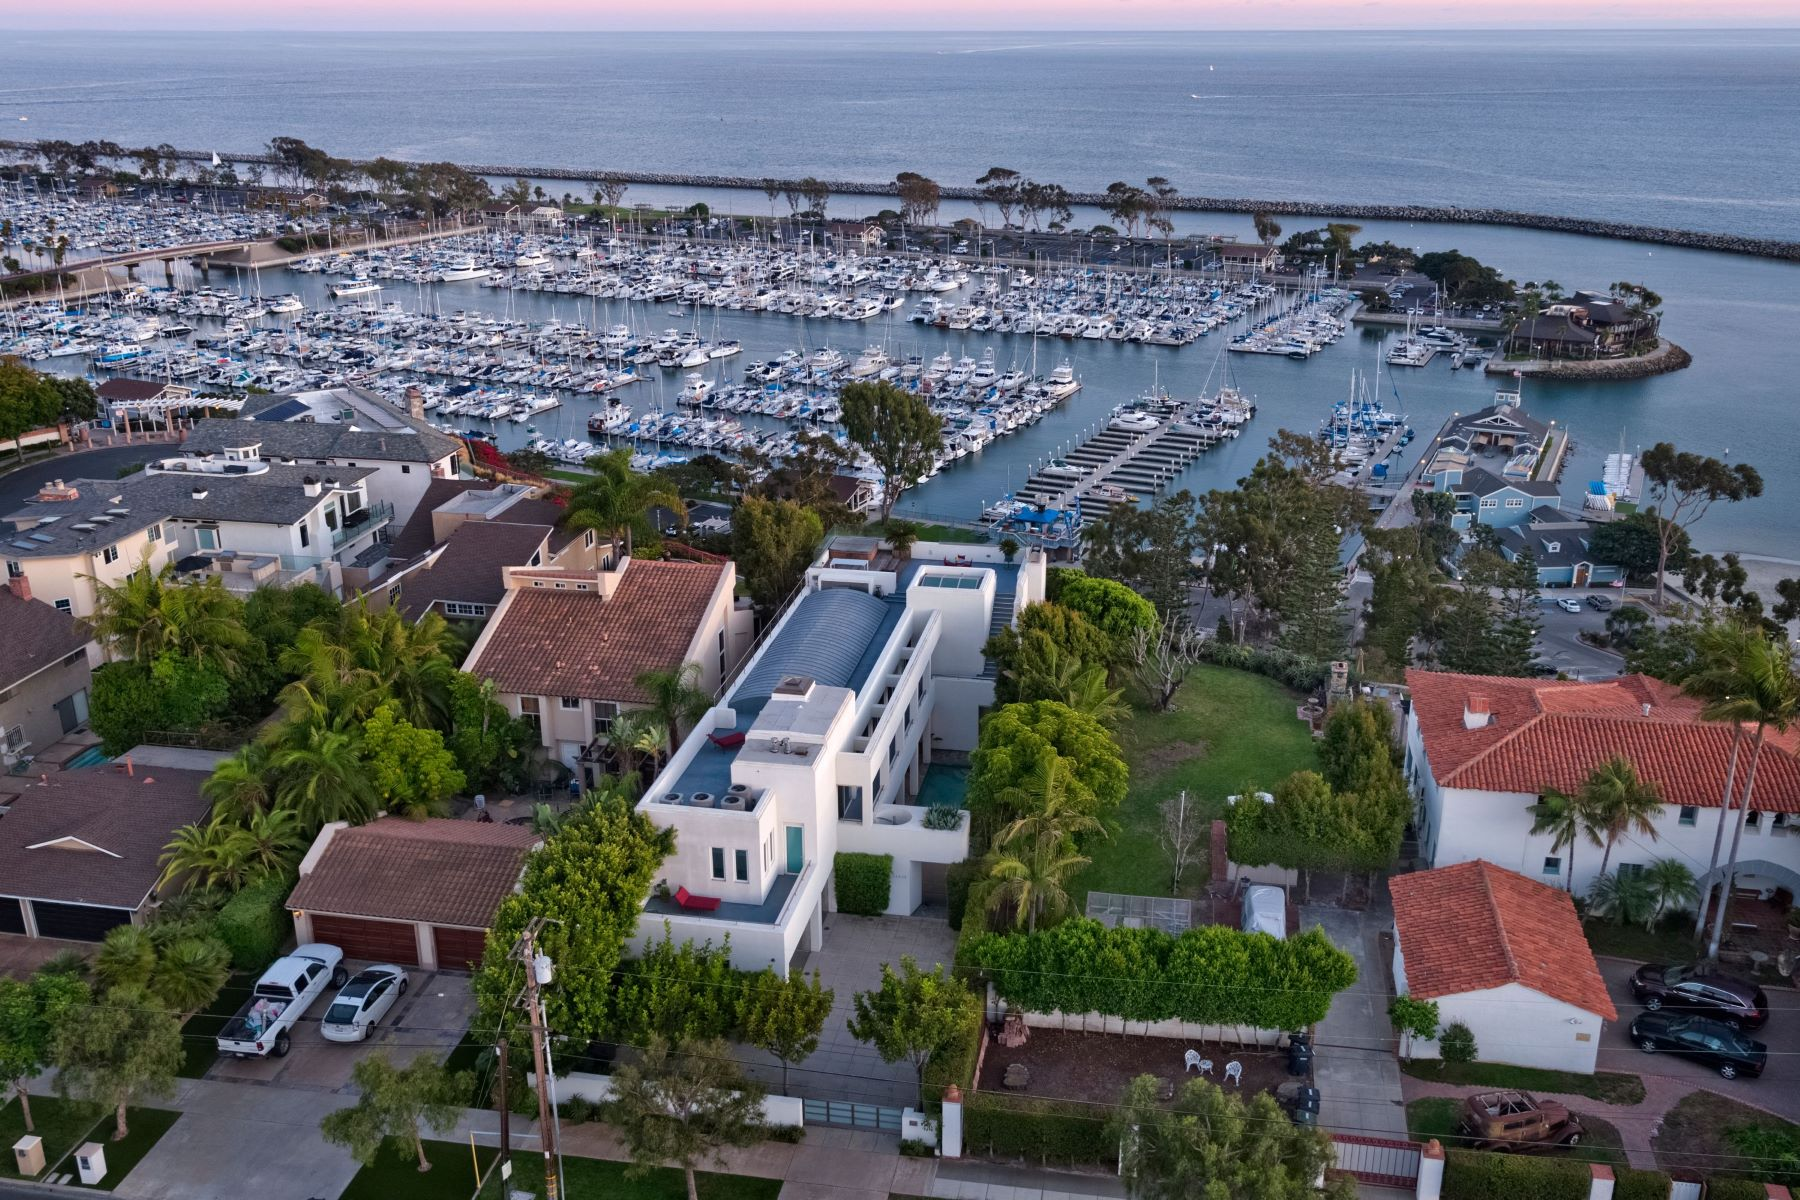 Single Family Homes for Sale at 24442 Santa Clara Ave, Dana Point 24442 Santa Clara Ave Dana Point, California 92629 United States